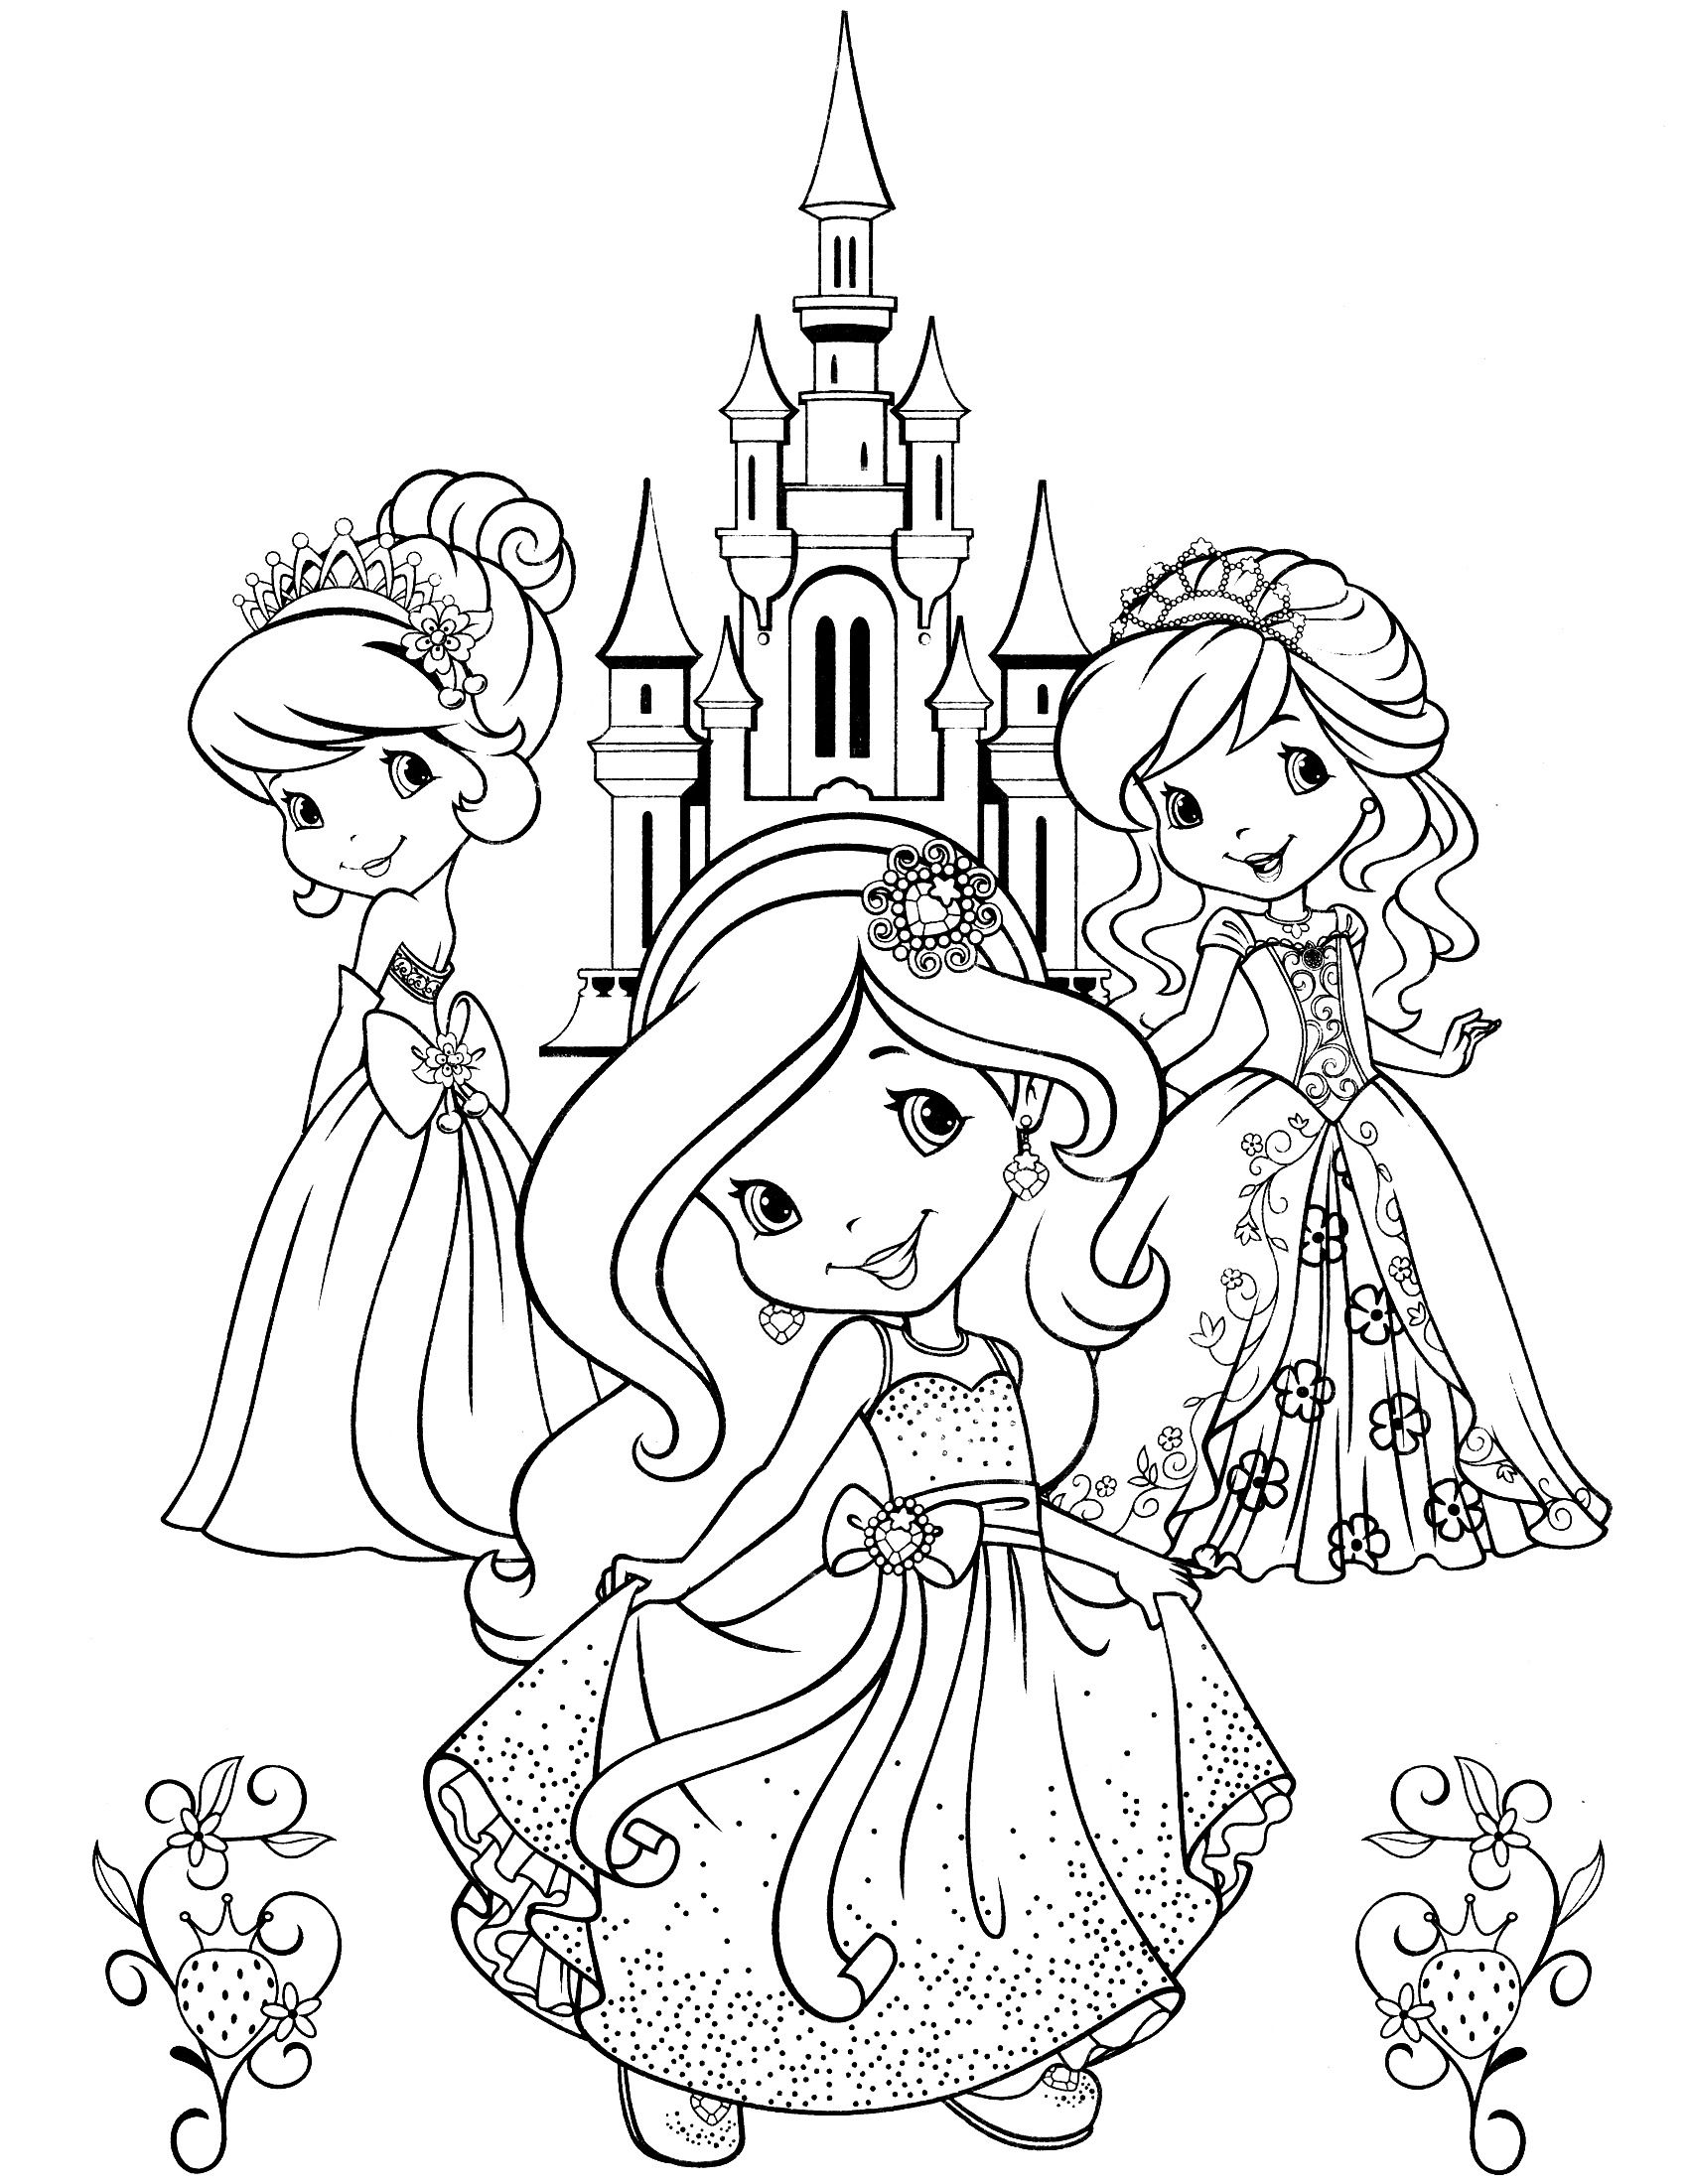 strawberry shortcake princess coloring pages strawberry shortcake princess coloring pages timeless shortcake coloring strawberry princess pages